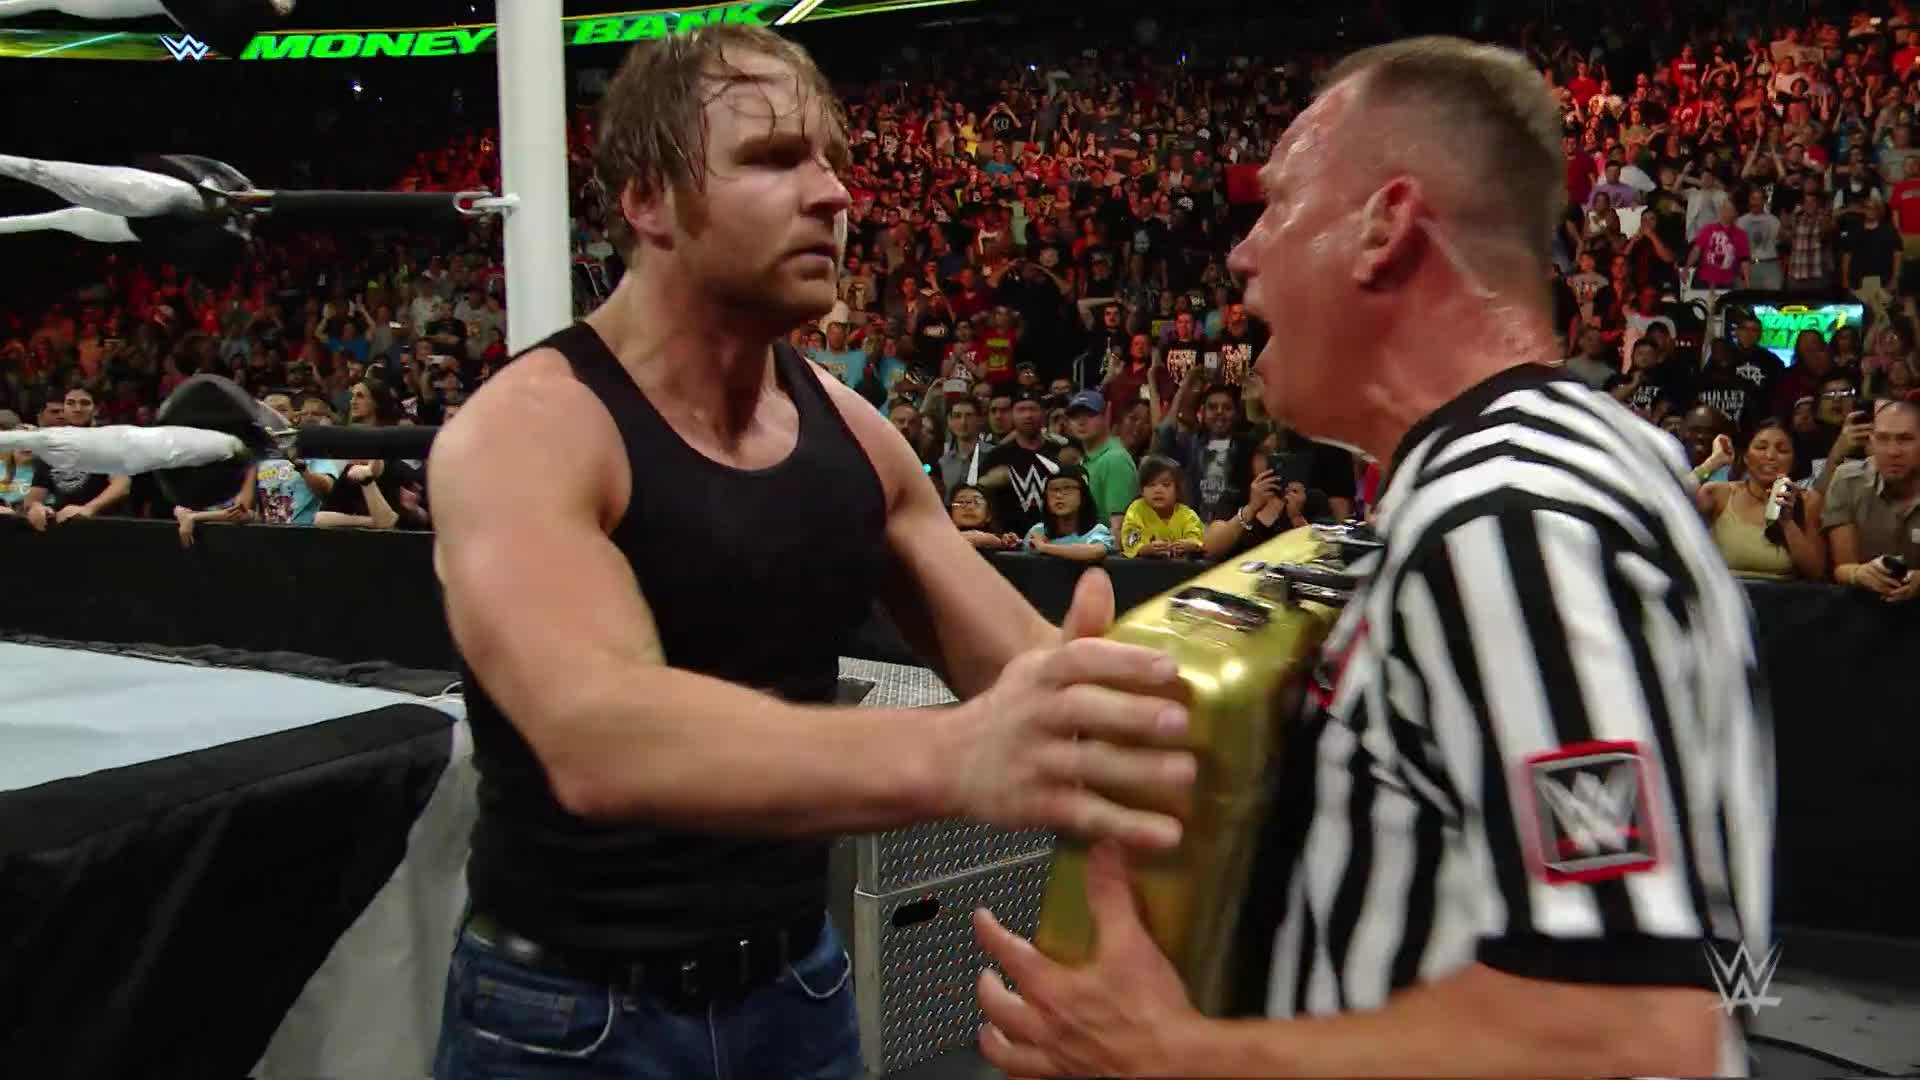 Dean Ambrose turns the Money in the Bank briefcase into a championship-winning weapon: WWE Money in the Bank 2016